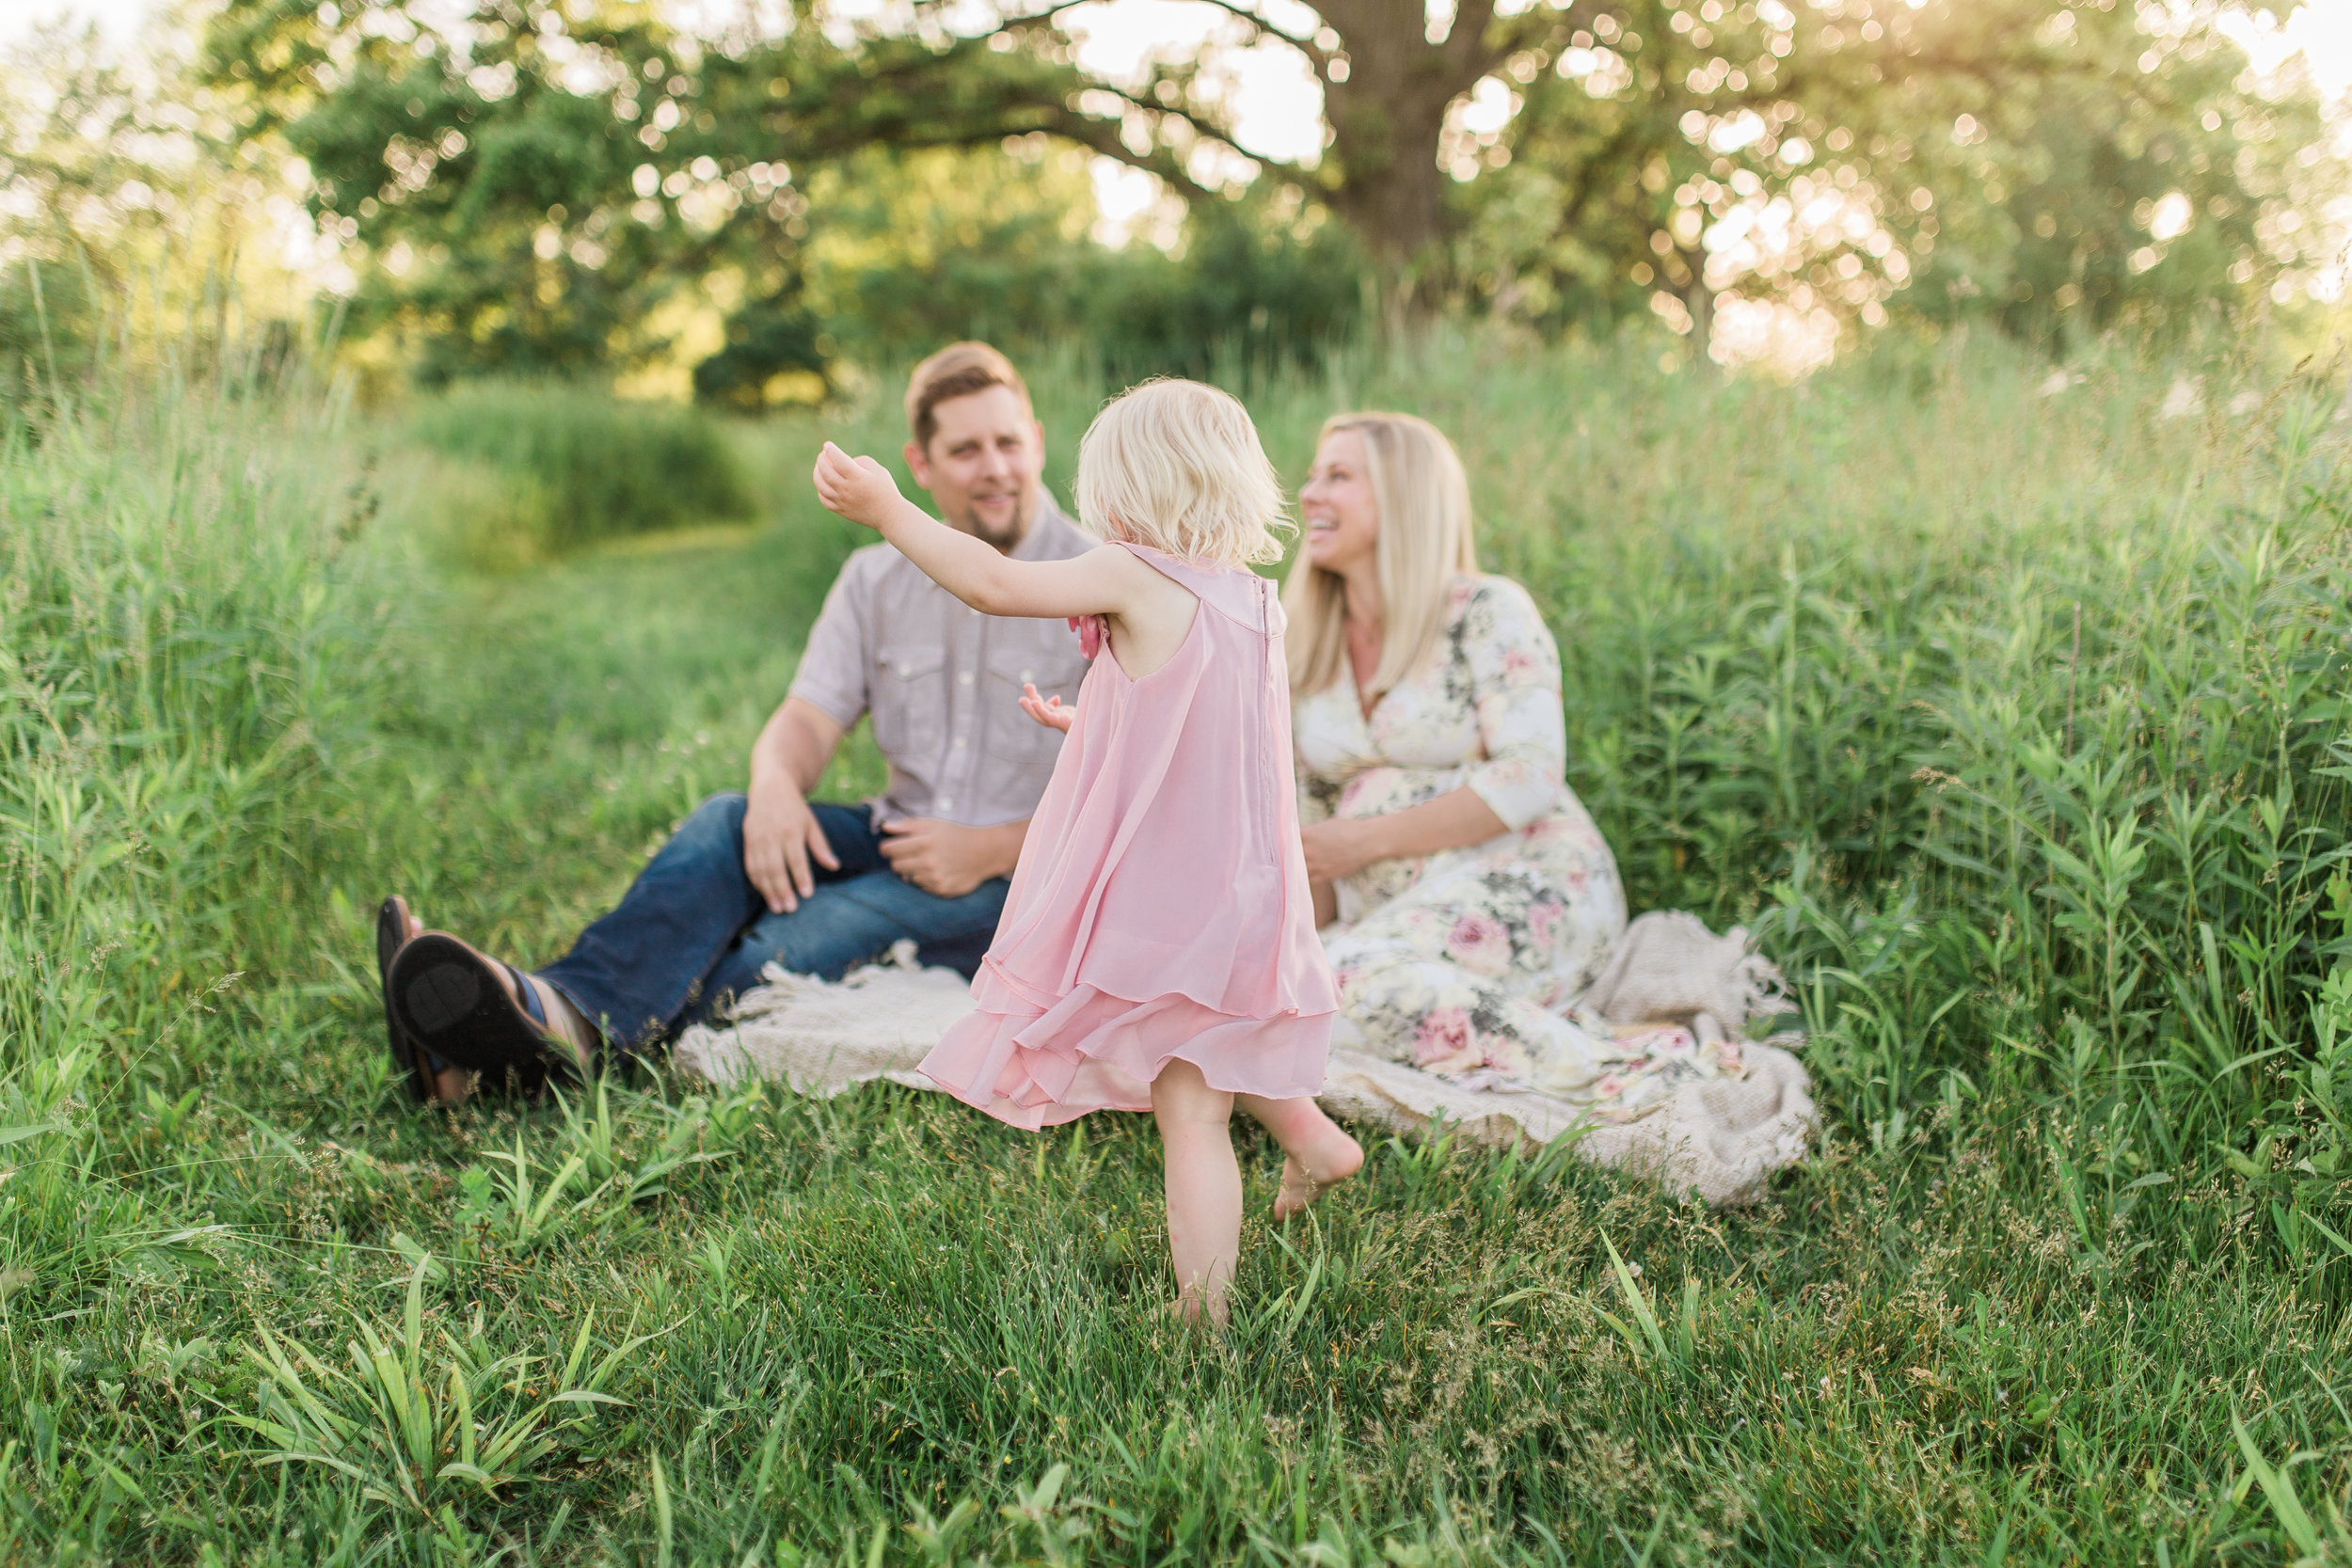 vanessa wyler maternity photography brookfield waukesha wisconsin sunset